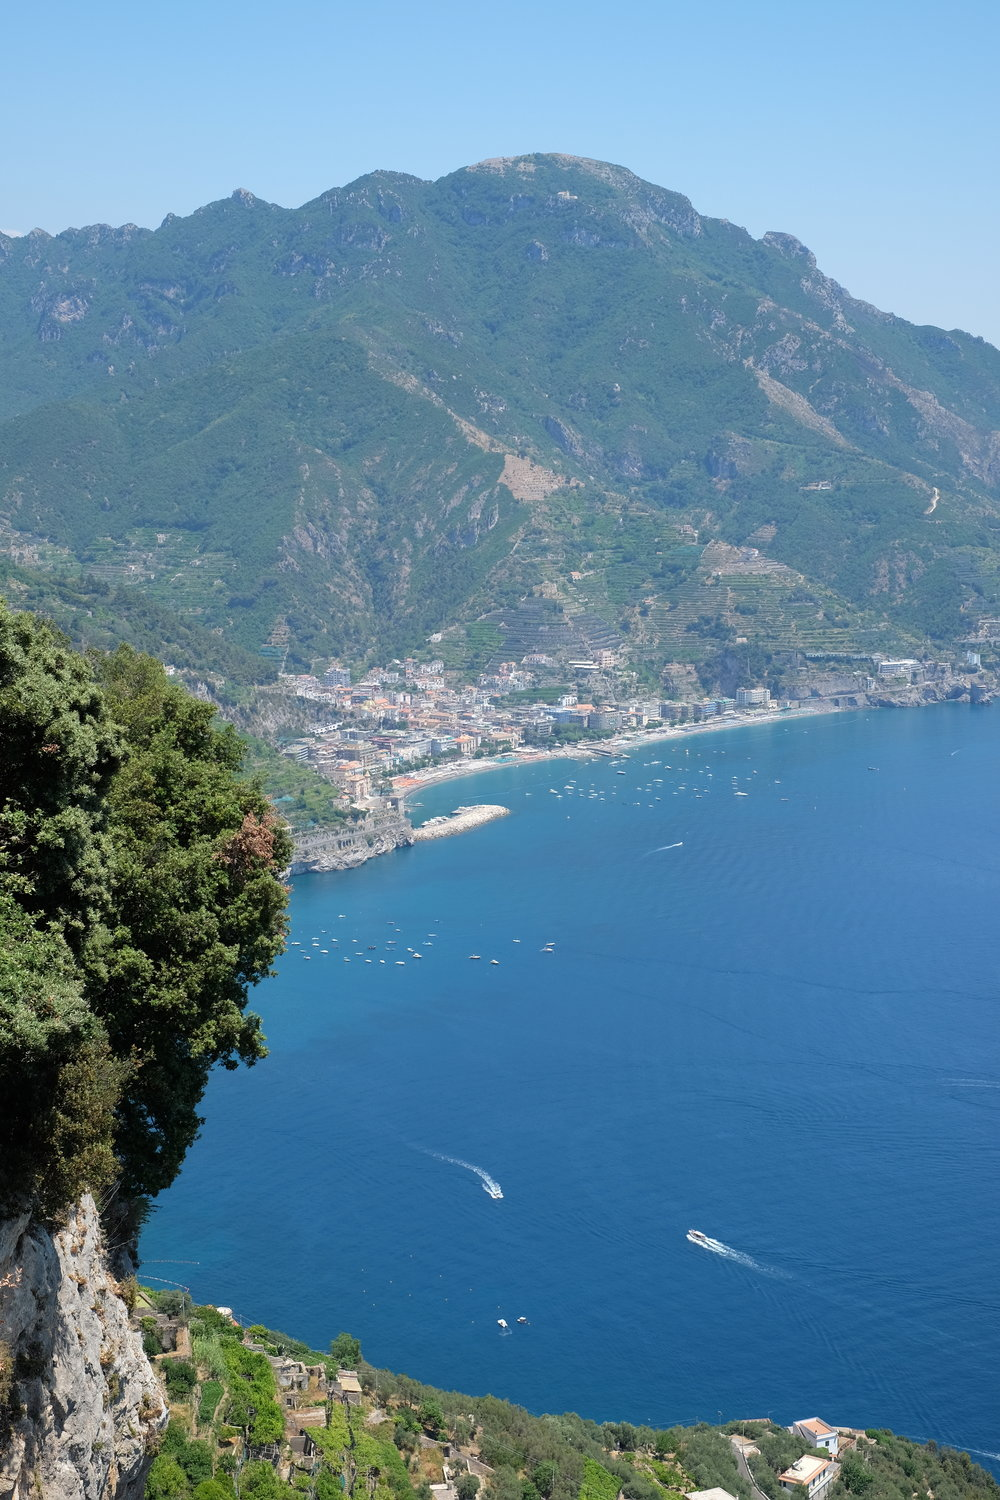 The beautiful view of Minori from Ravello.